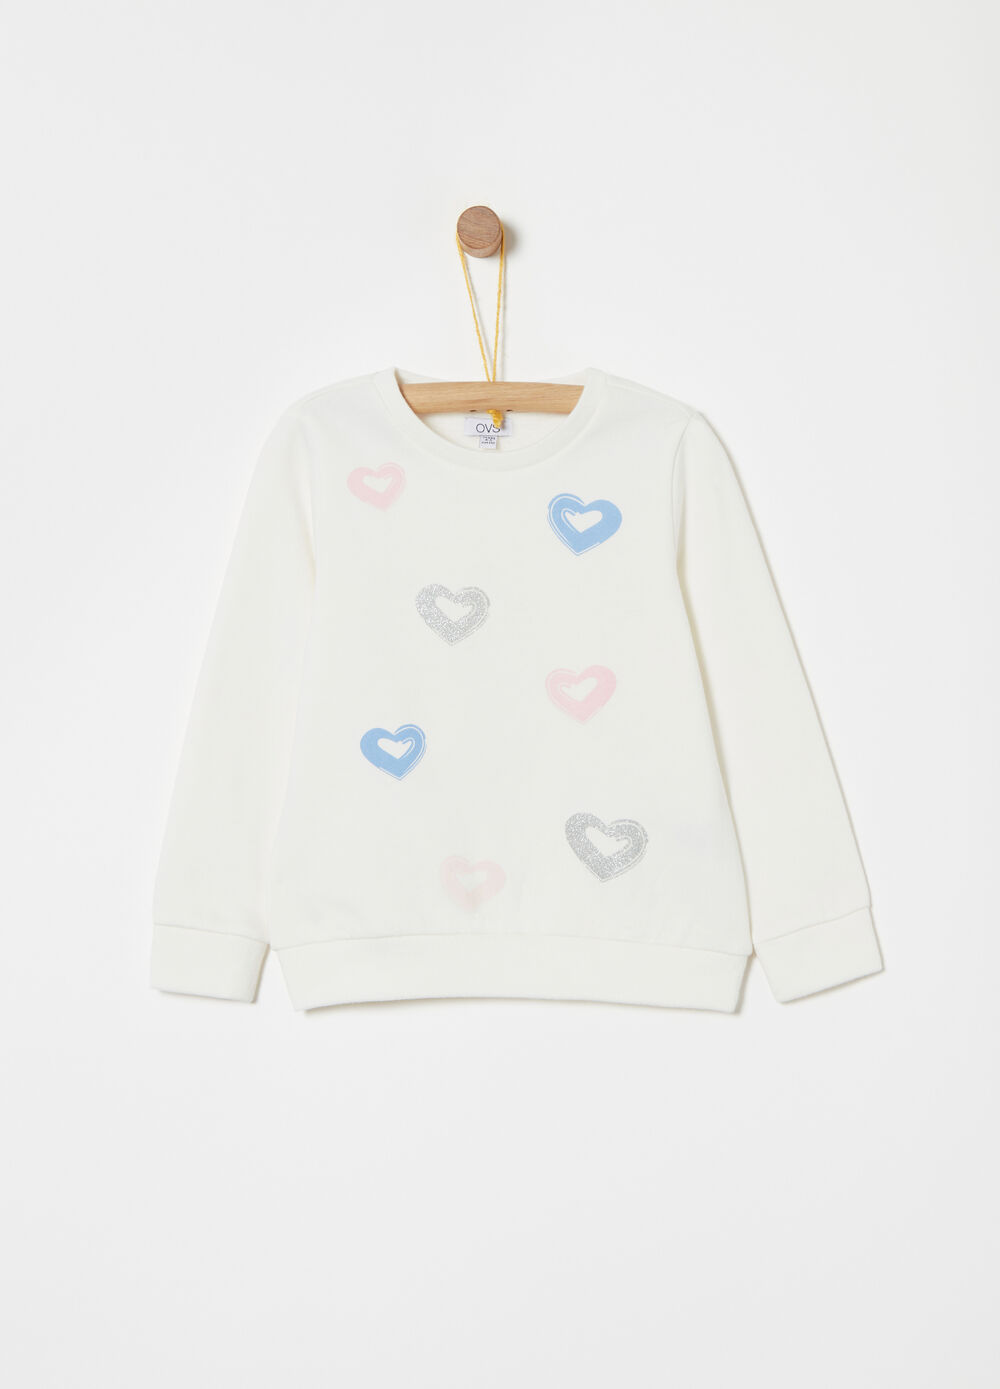 Cotton sweatshirt with glitter details and print